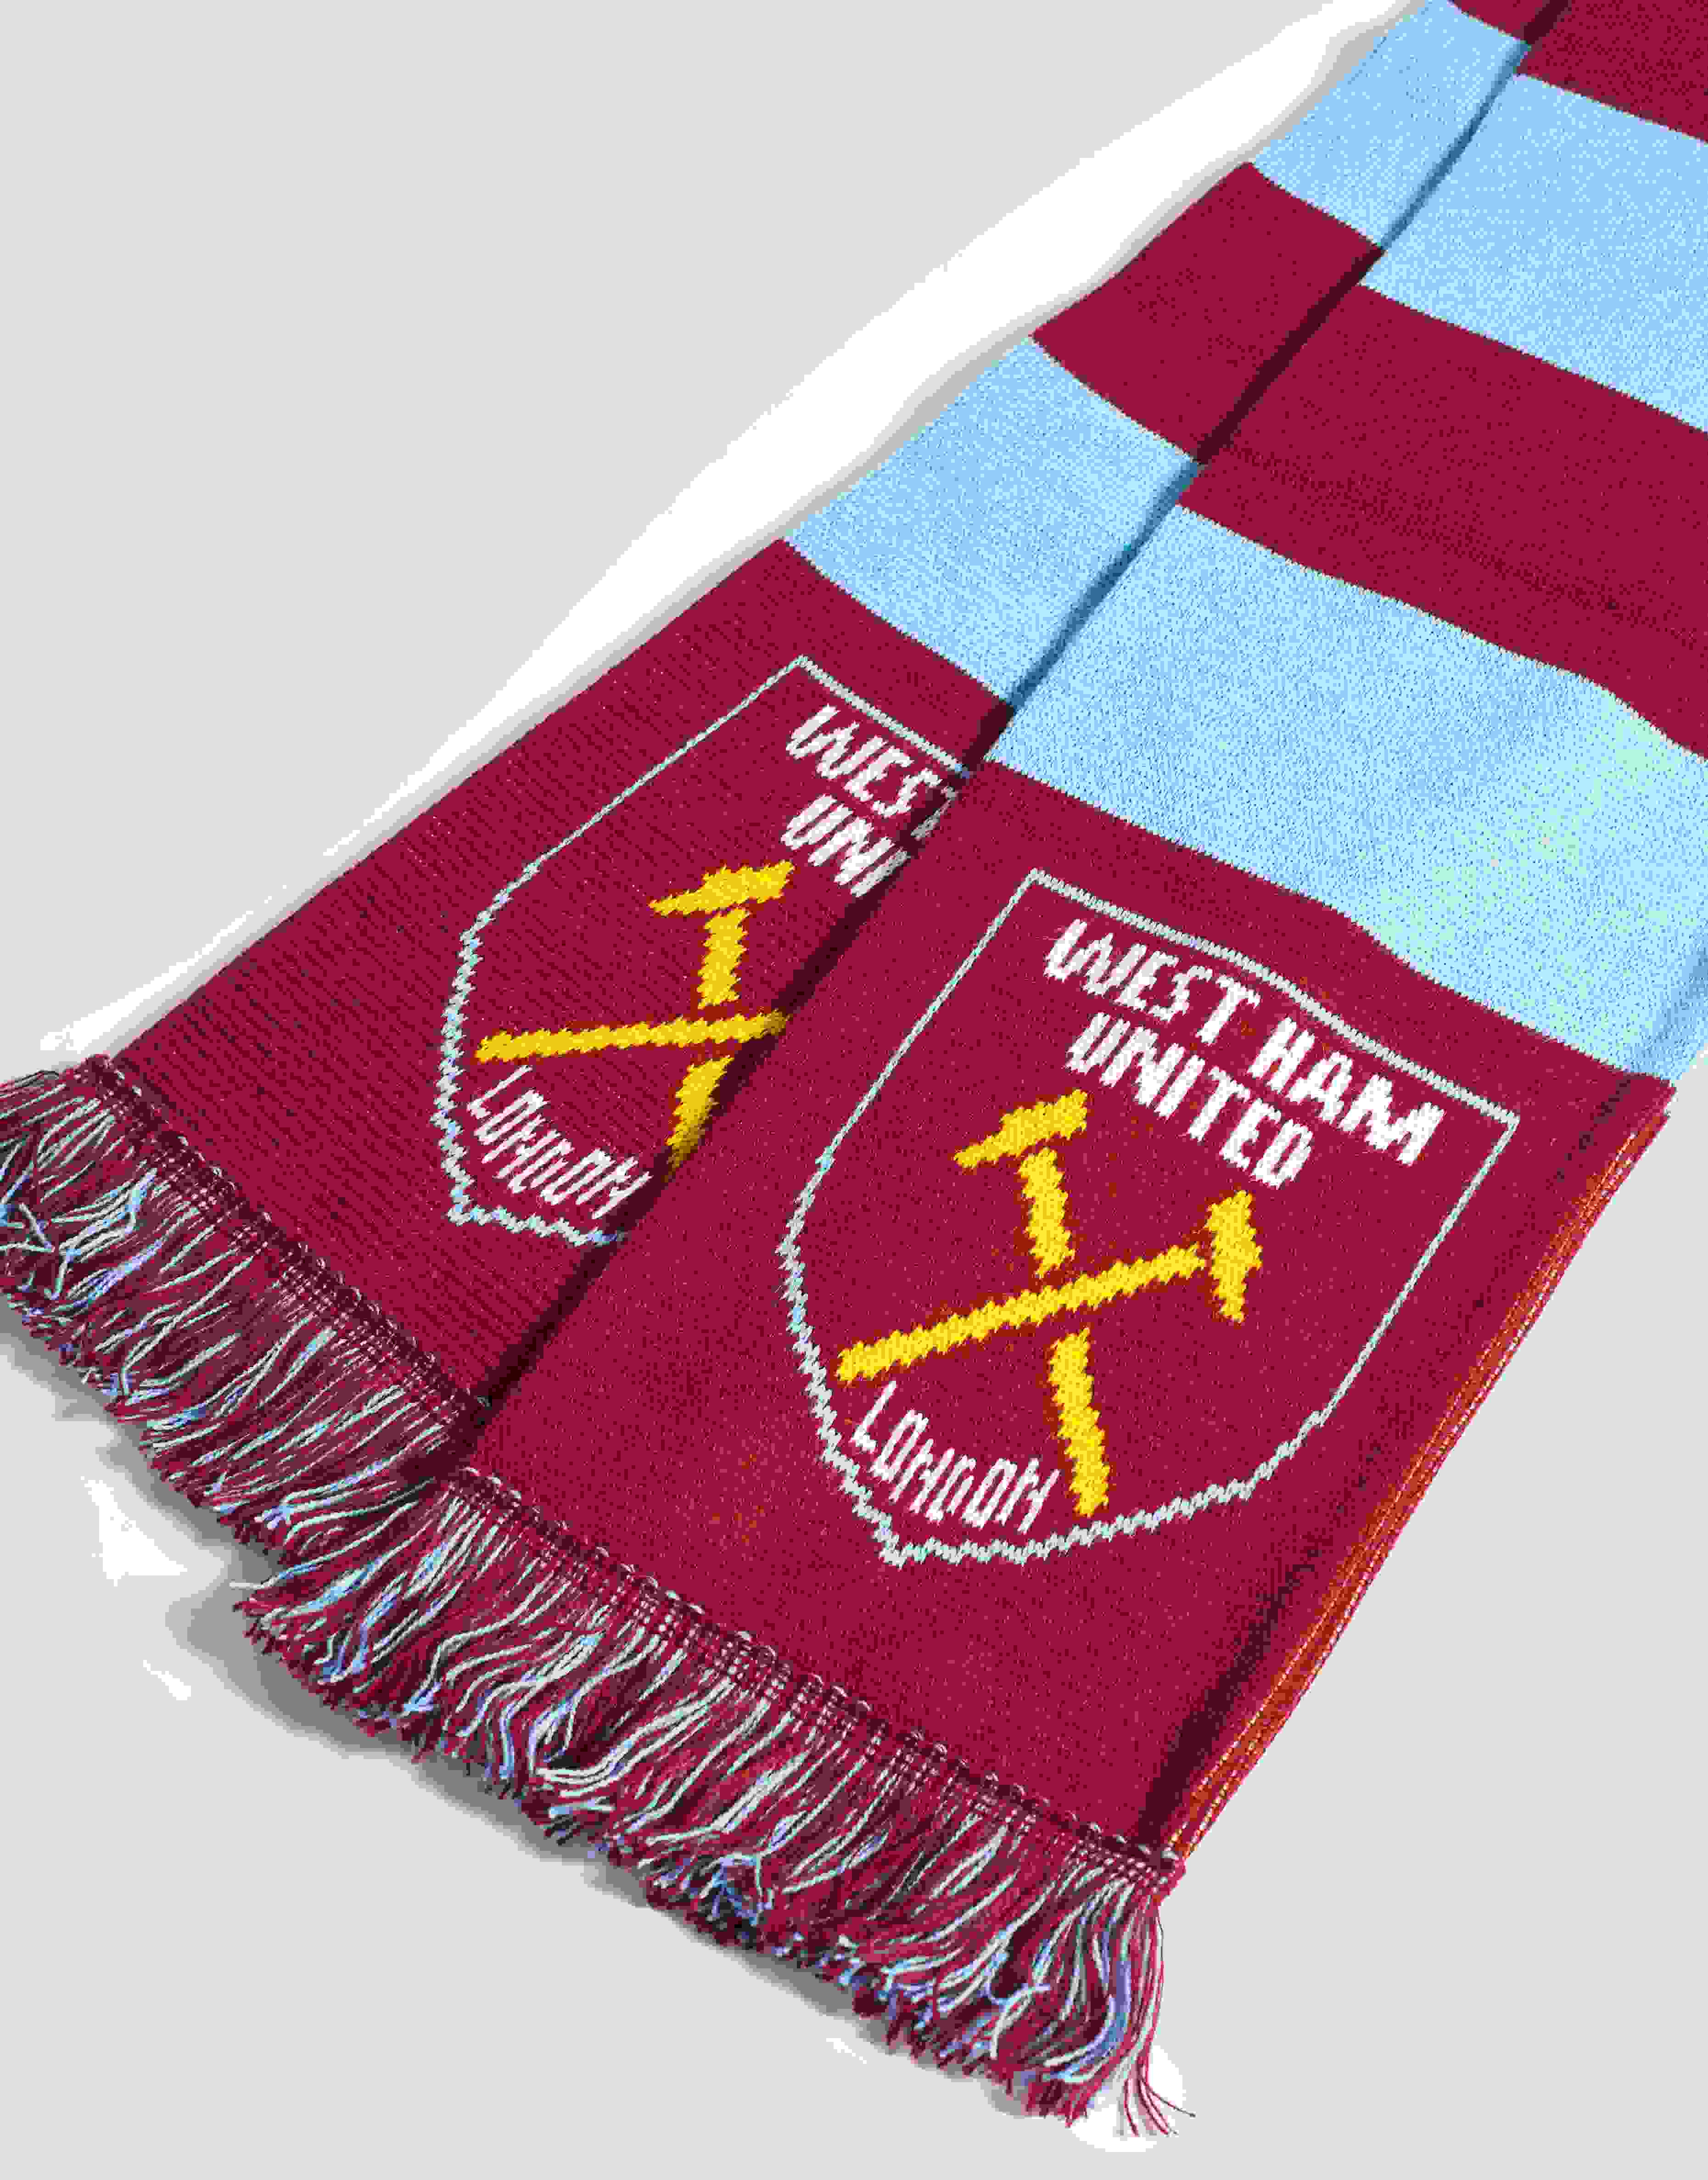 West Ham United FC Official Knitted Football Crest Scarf SG6221